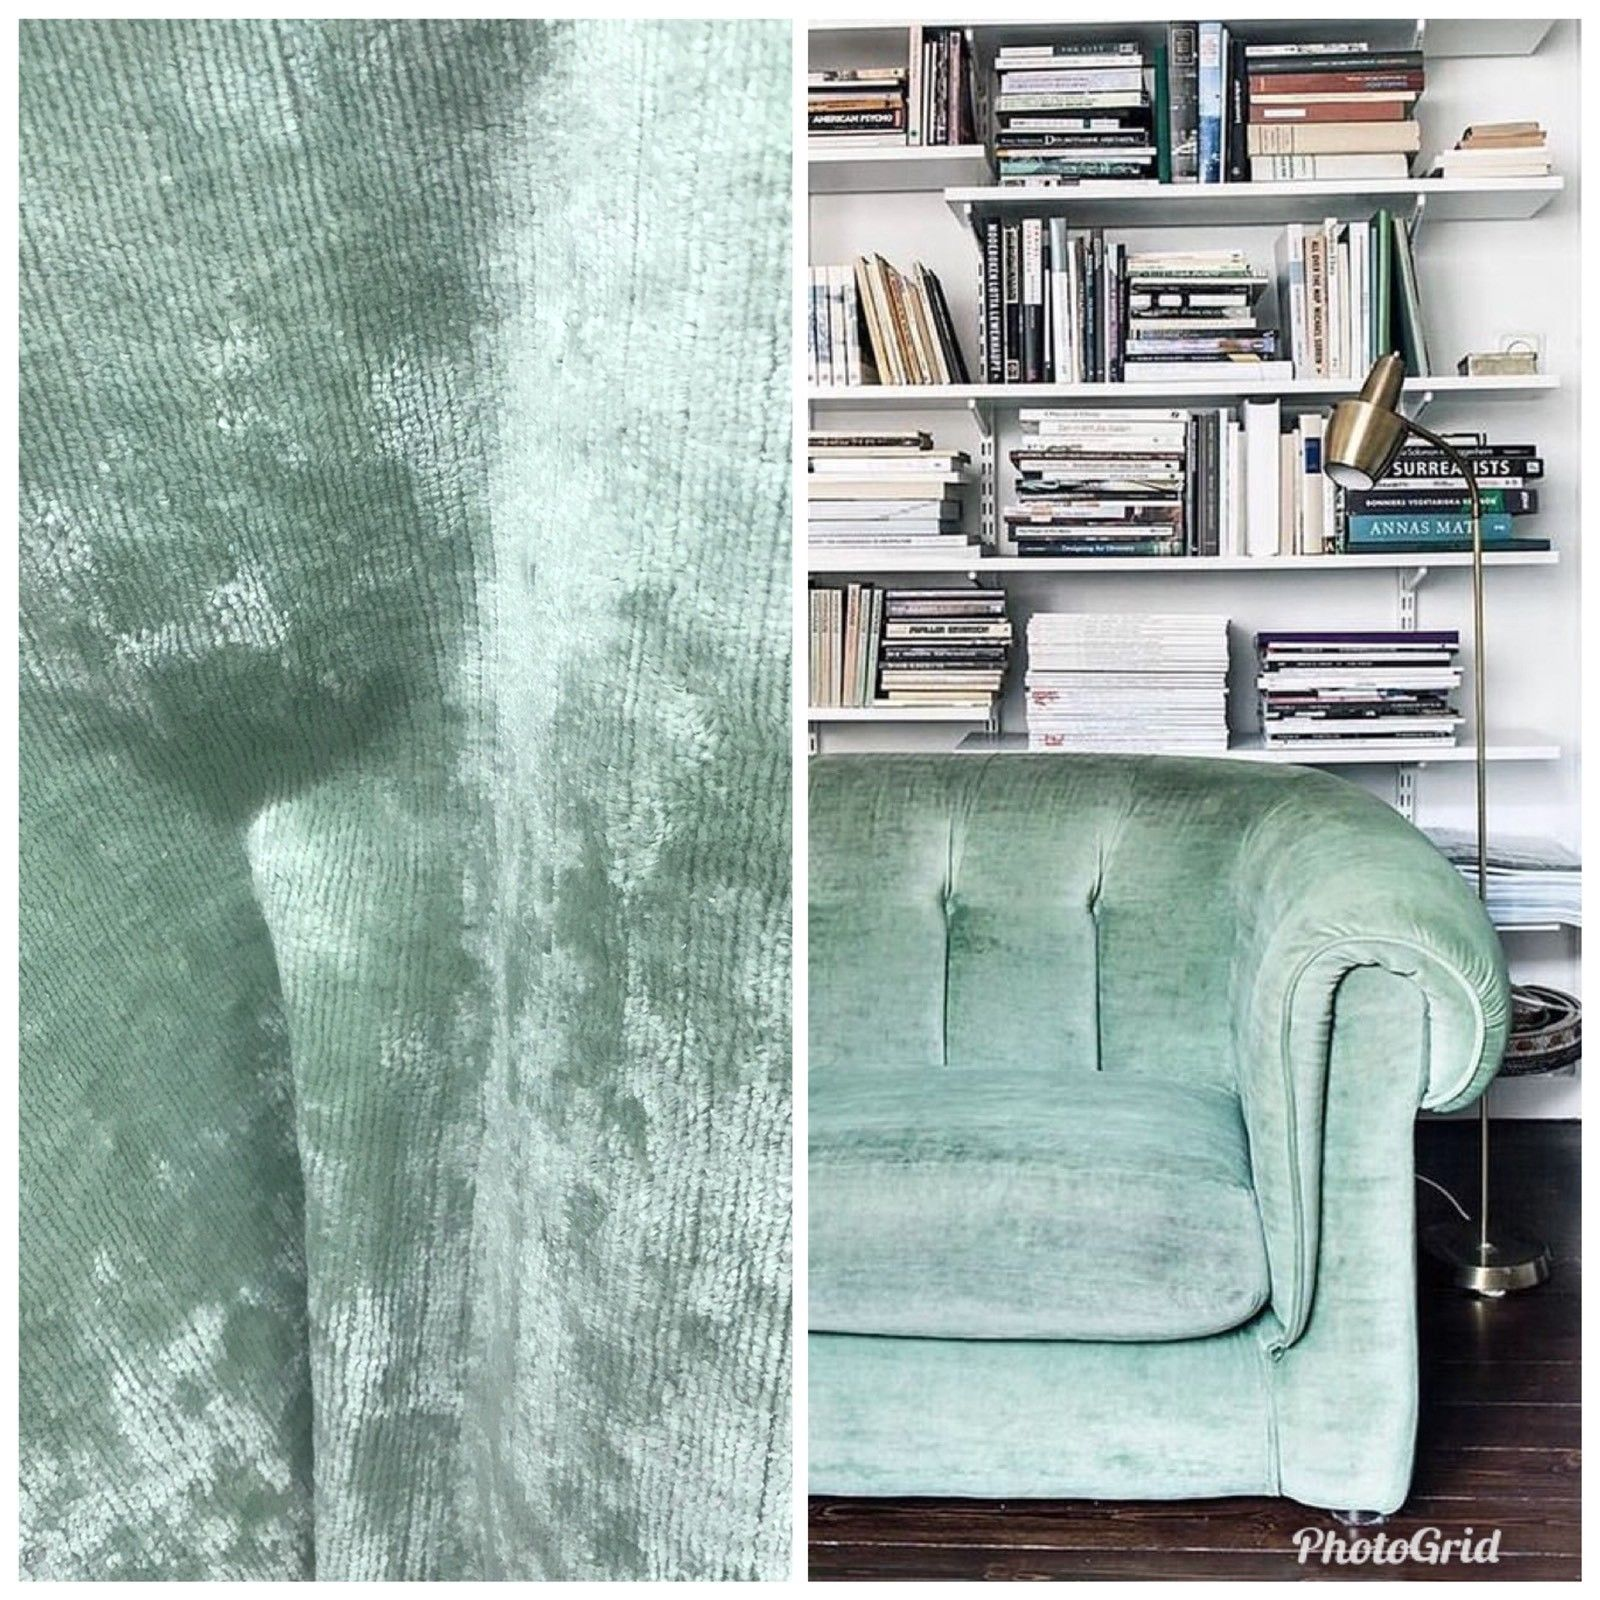 Designer Antique Inspired Velvet Fabric - Aqua Mint Green - Upholstery Weight - Fancy Styles Fabric Pierre Frey Lee Jofa